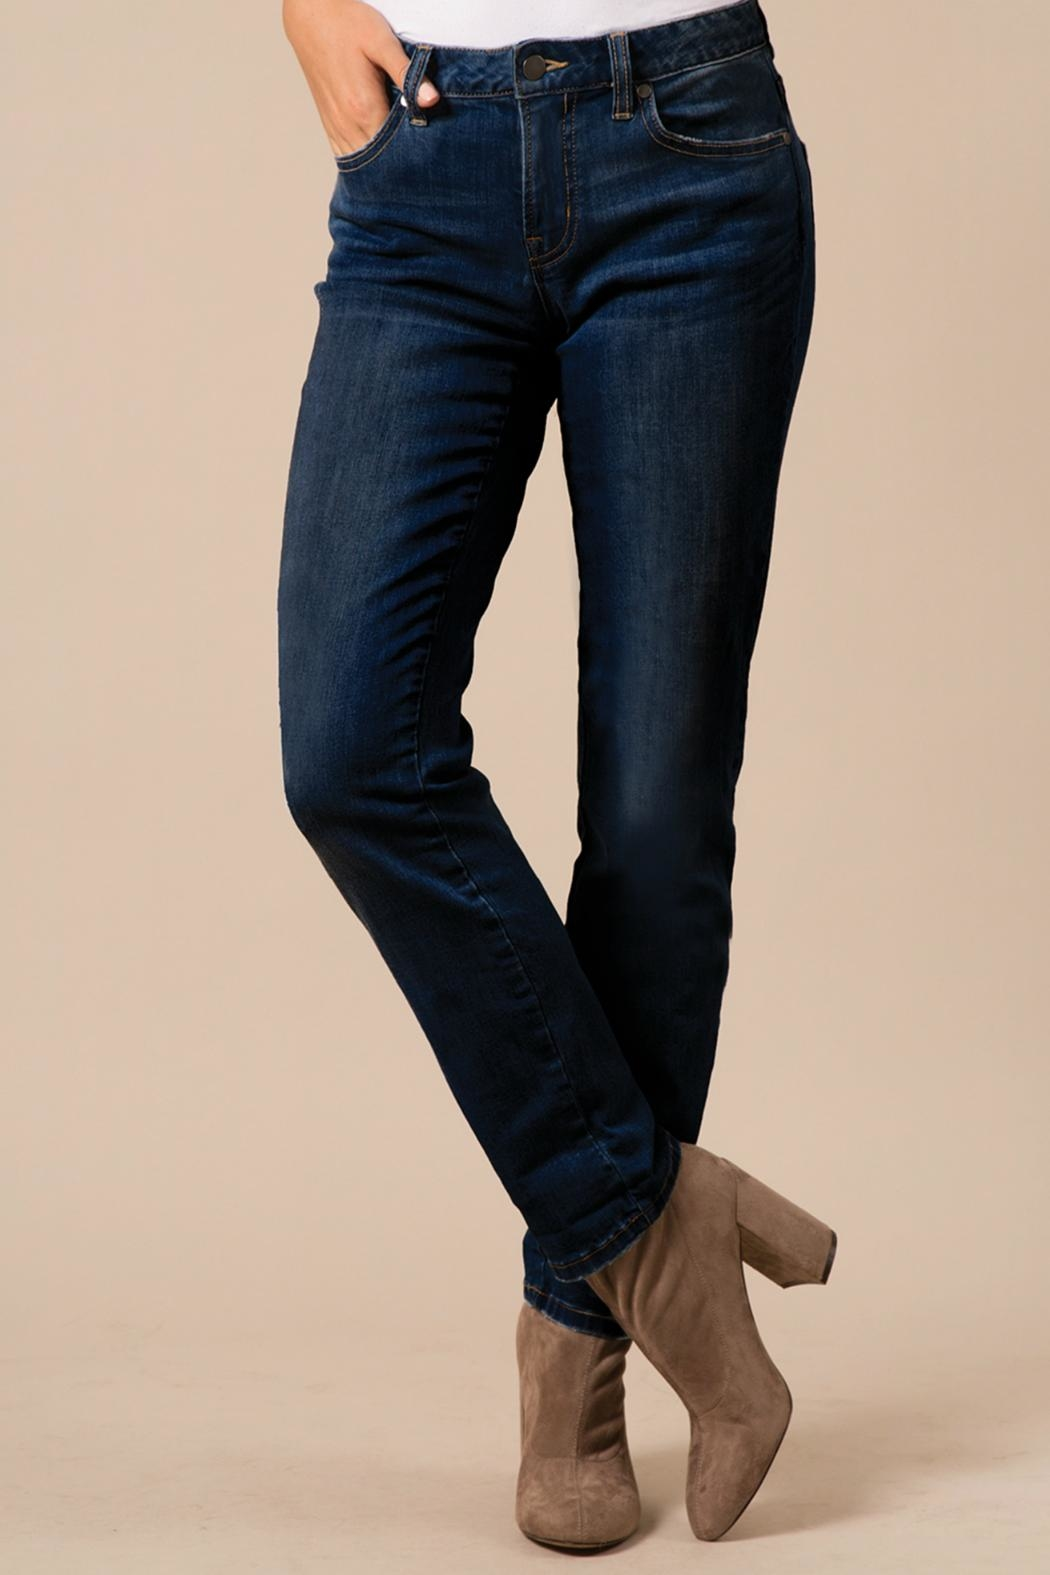 Simply Noelle Denim Boyfriend Jean - Main Image